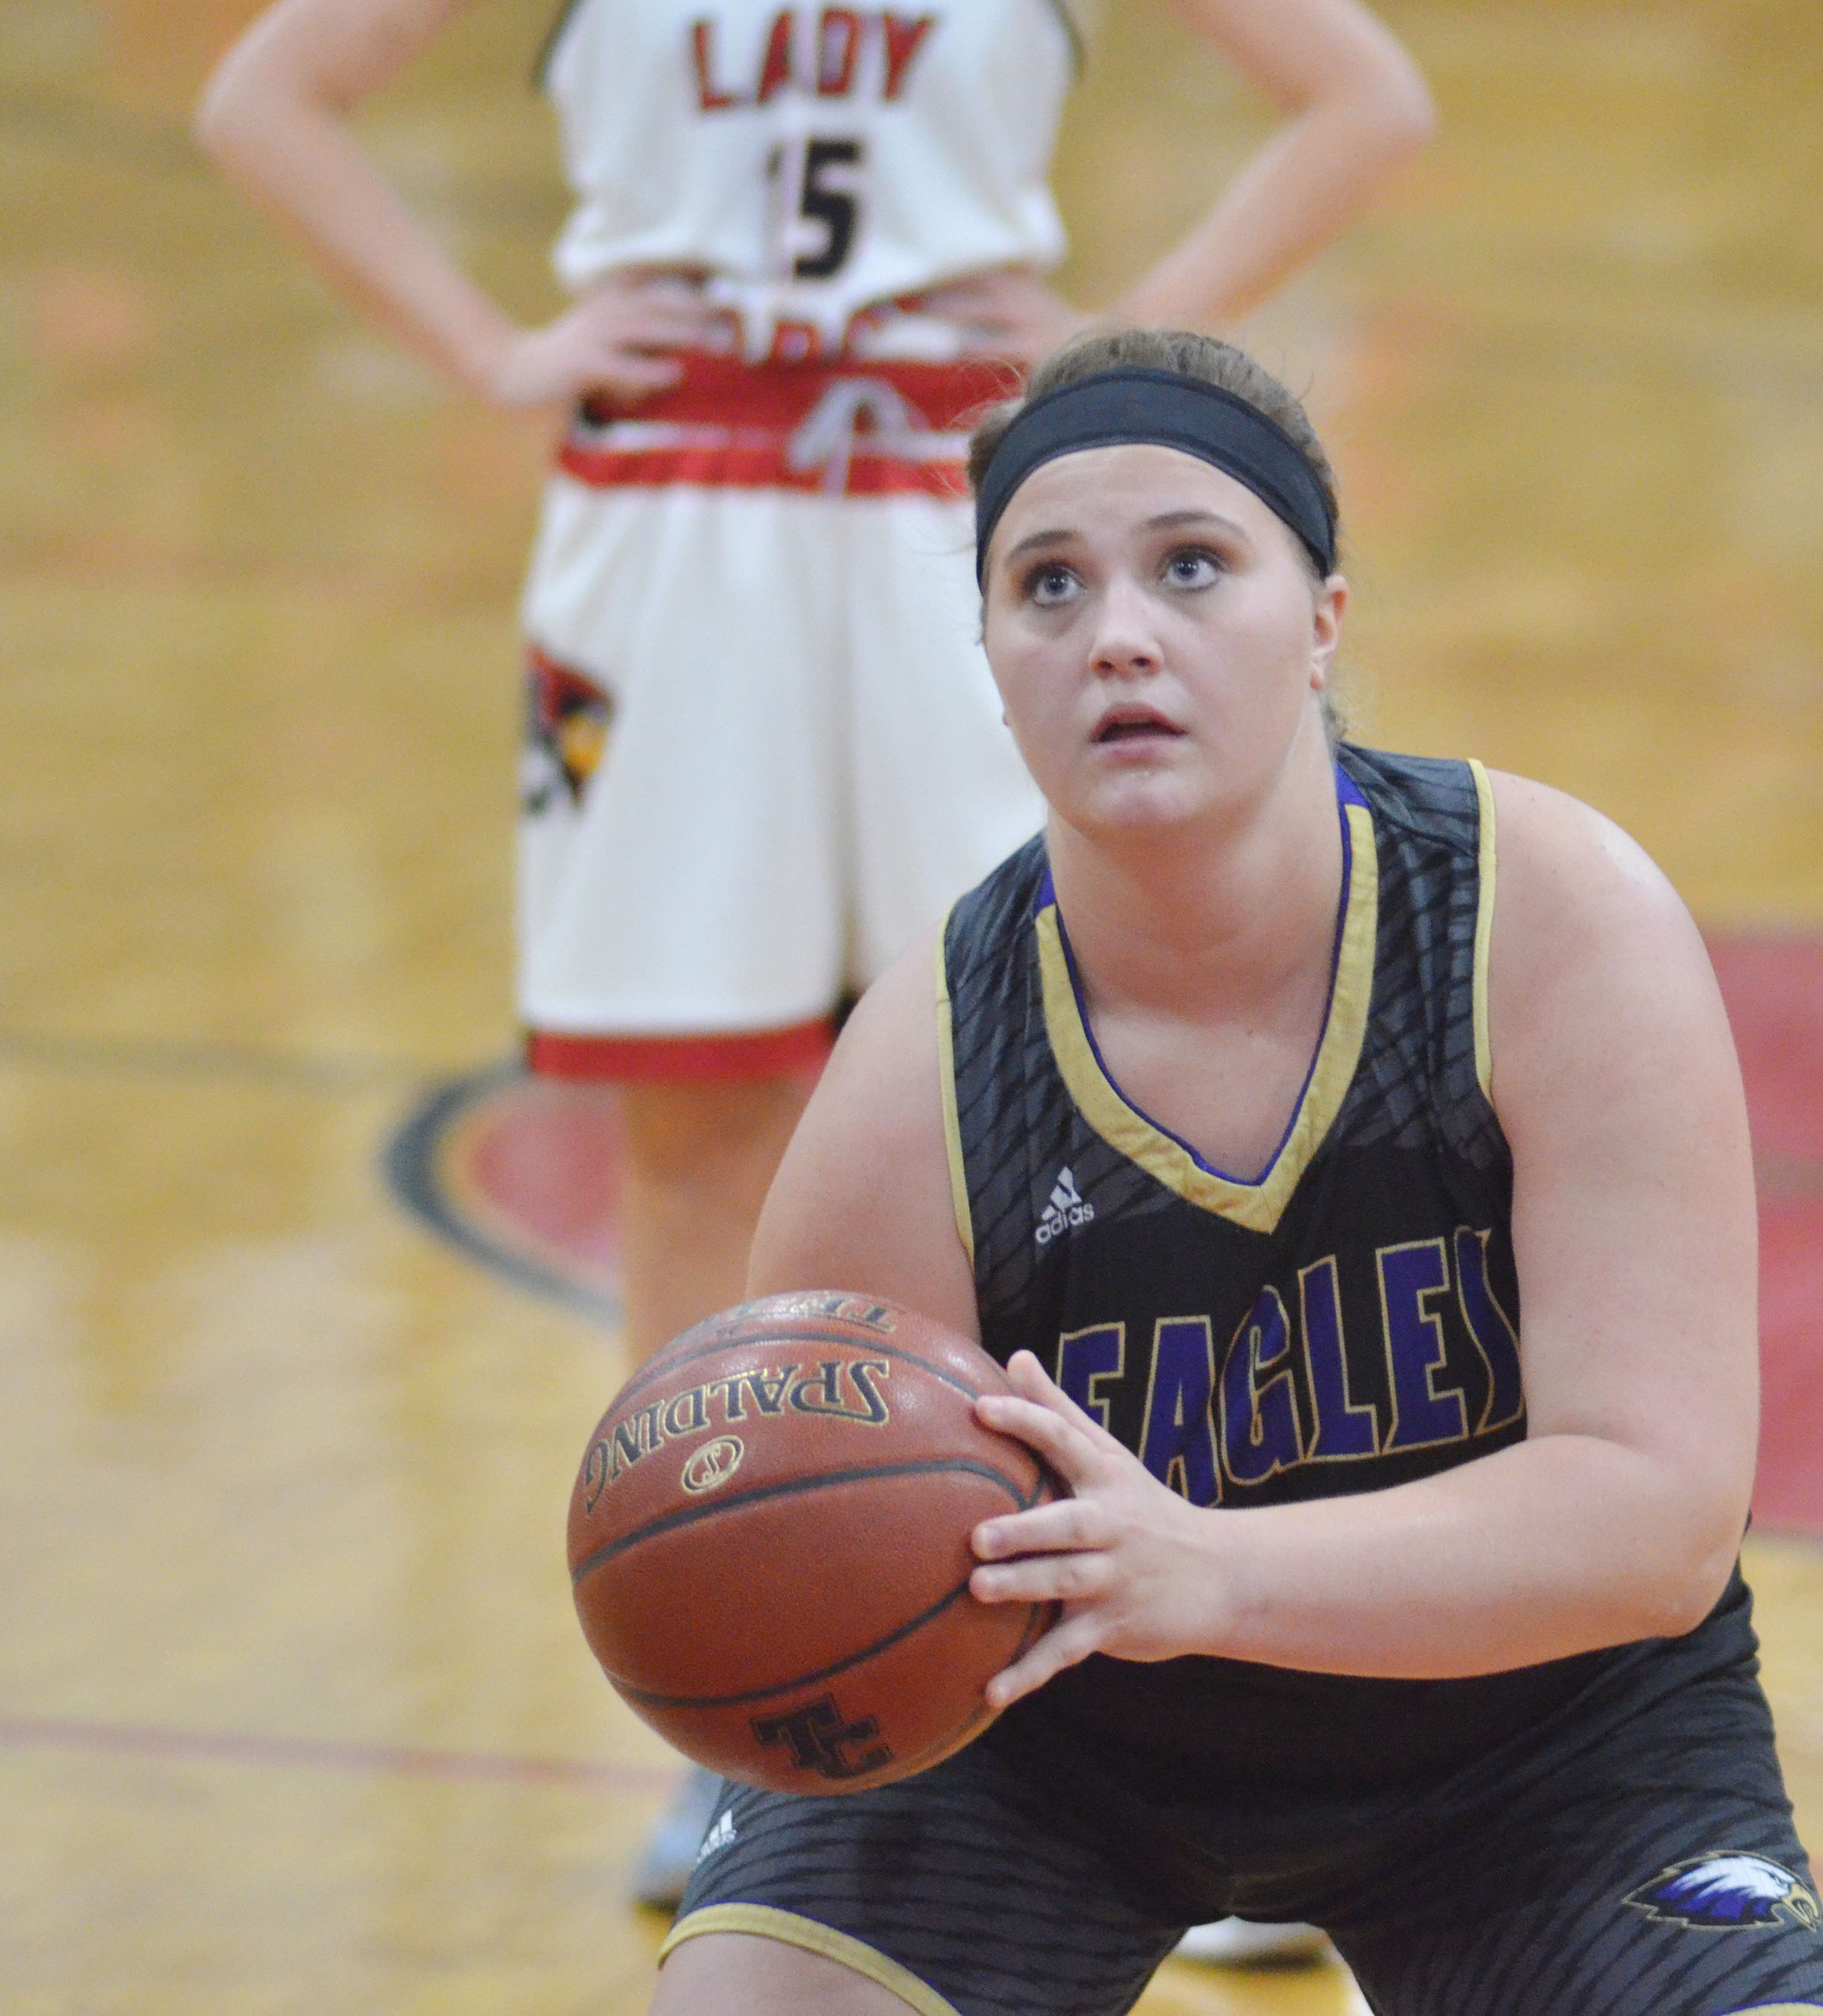 CHS senior Brenna Wethington shoots the ball.